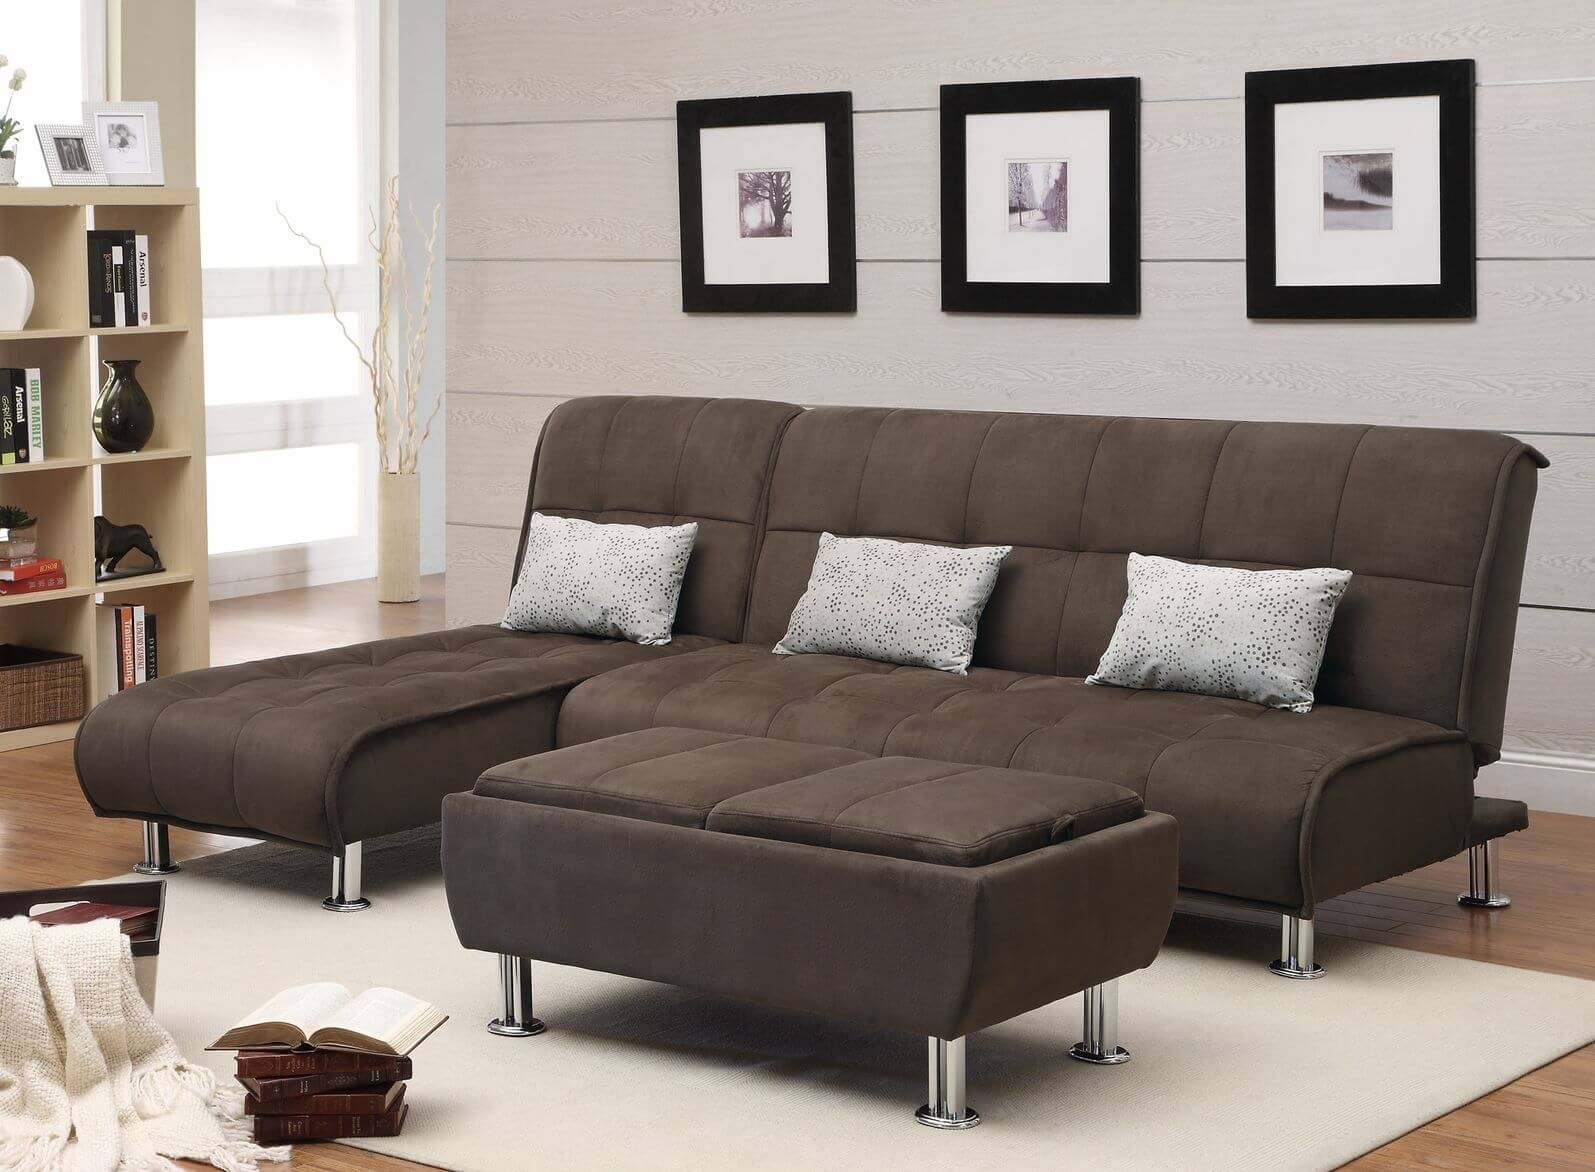 Furniture : Ethan Allen Wood Sofa Chaise Lounge Furniture Indoor Regarding Quad Cities Sectional Sofas (Image 7 of 10)